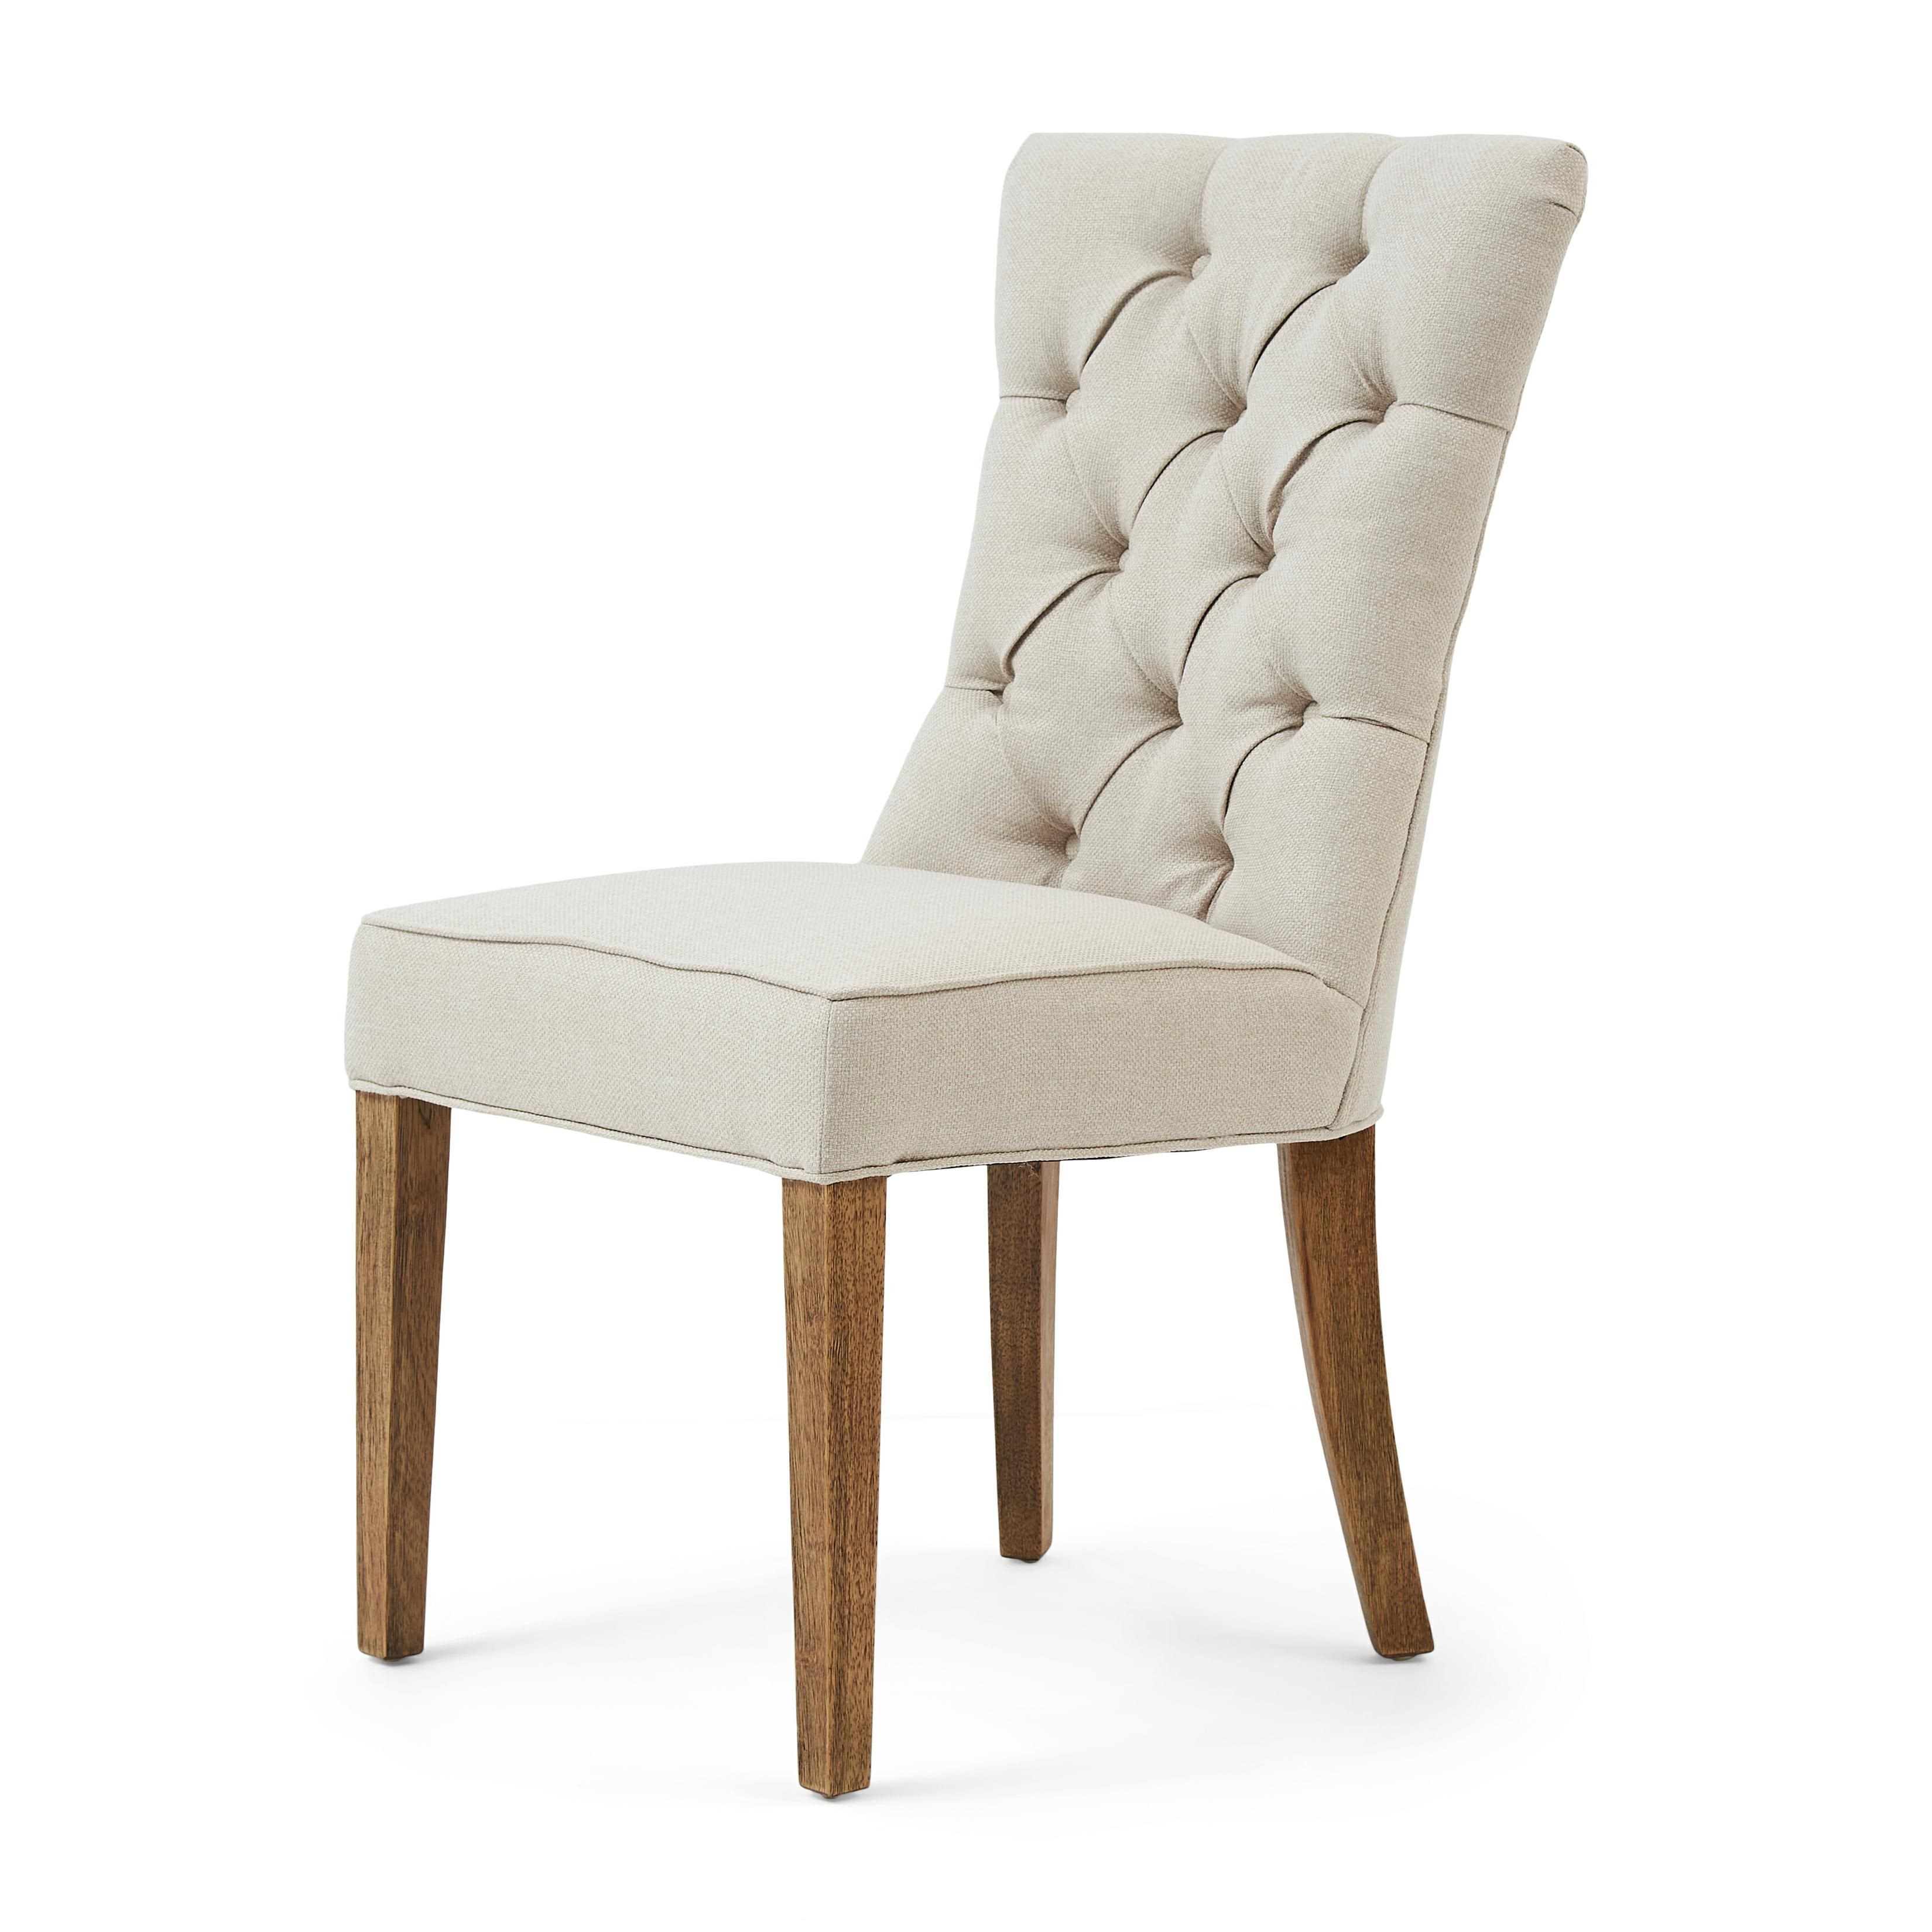 Balmoral Dining Chair oxford weave flanders flax / Rivièra Maison